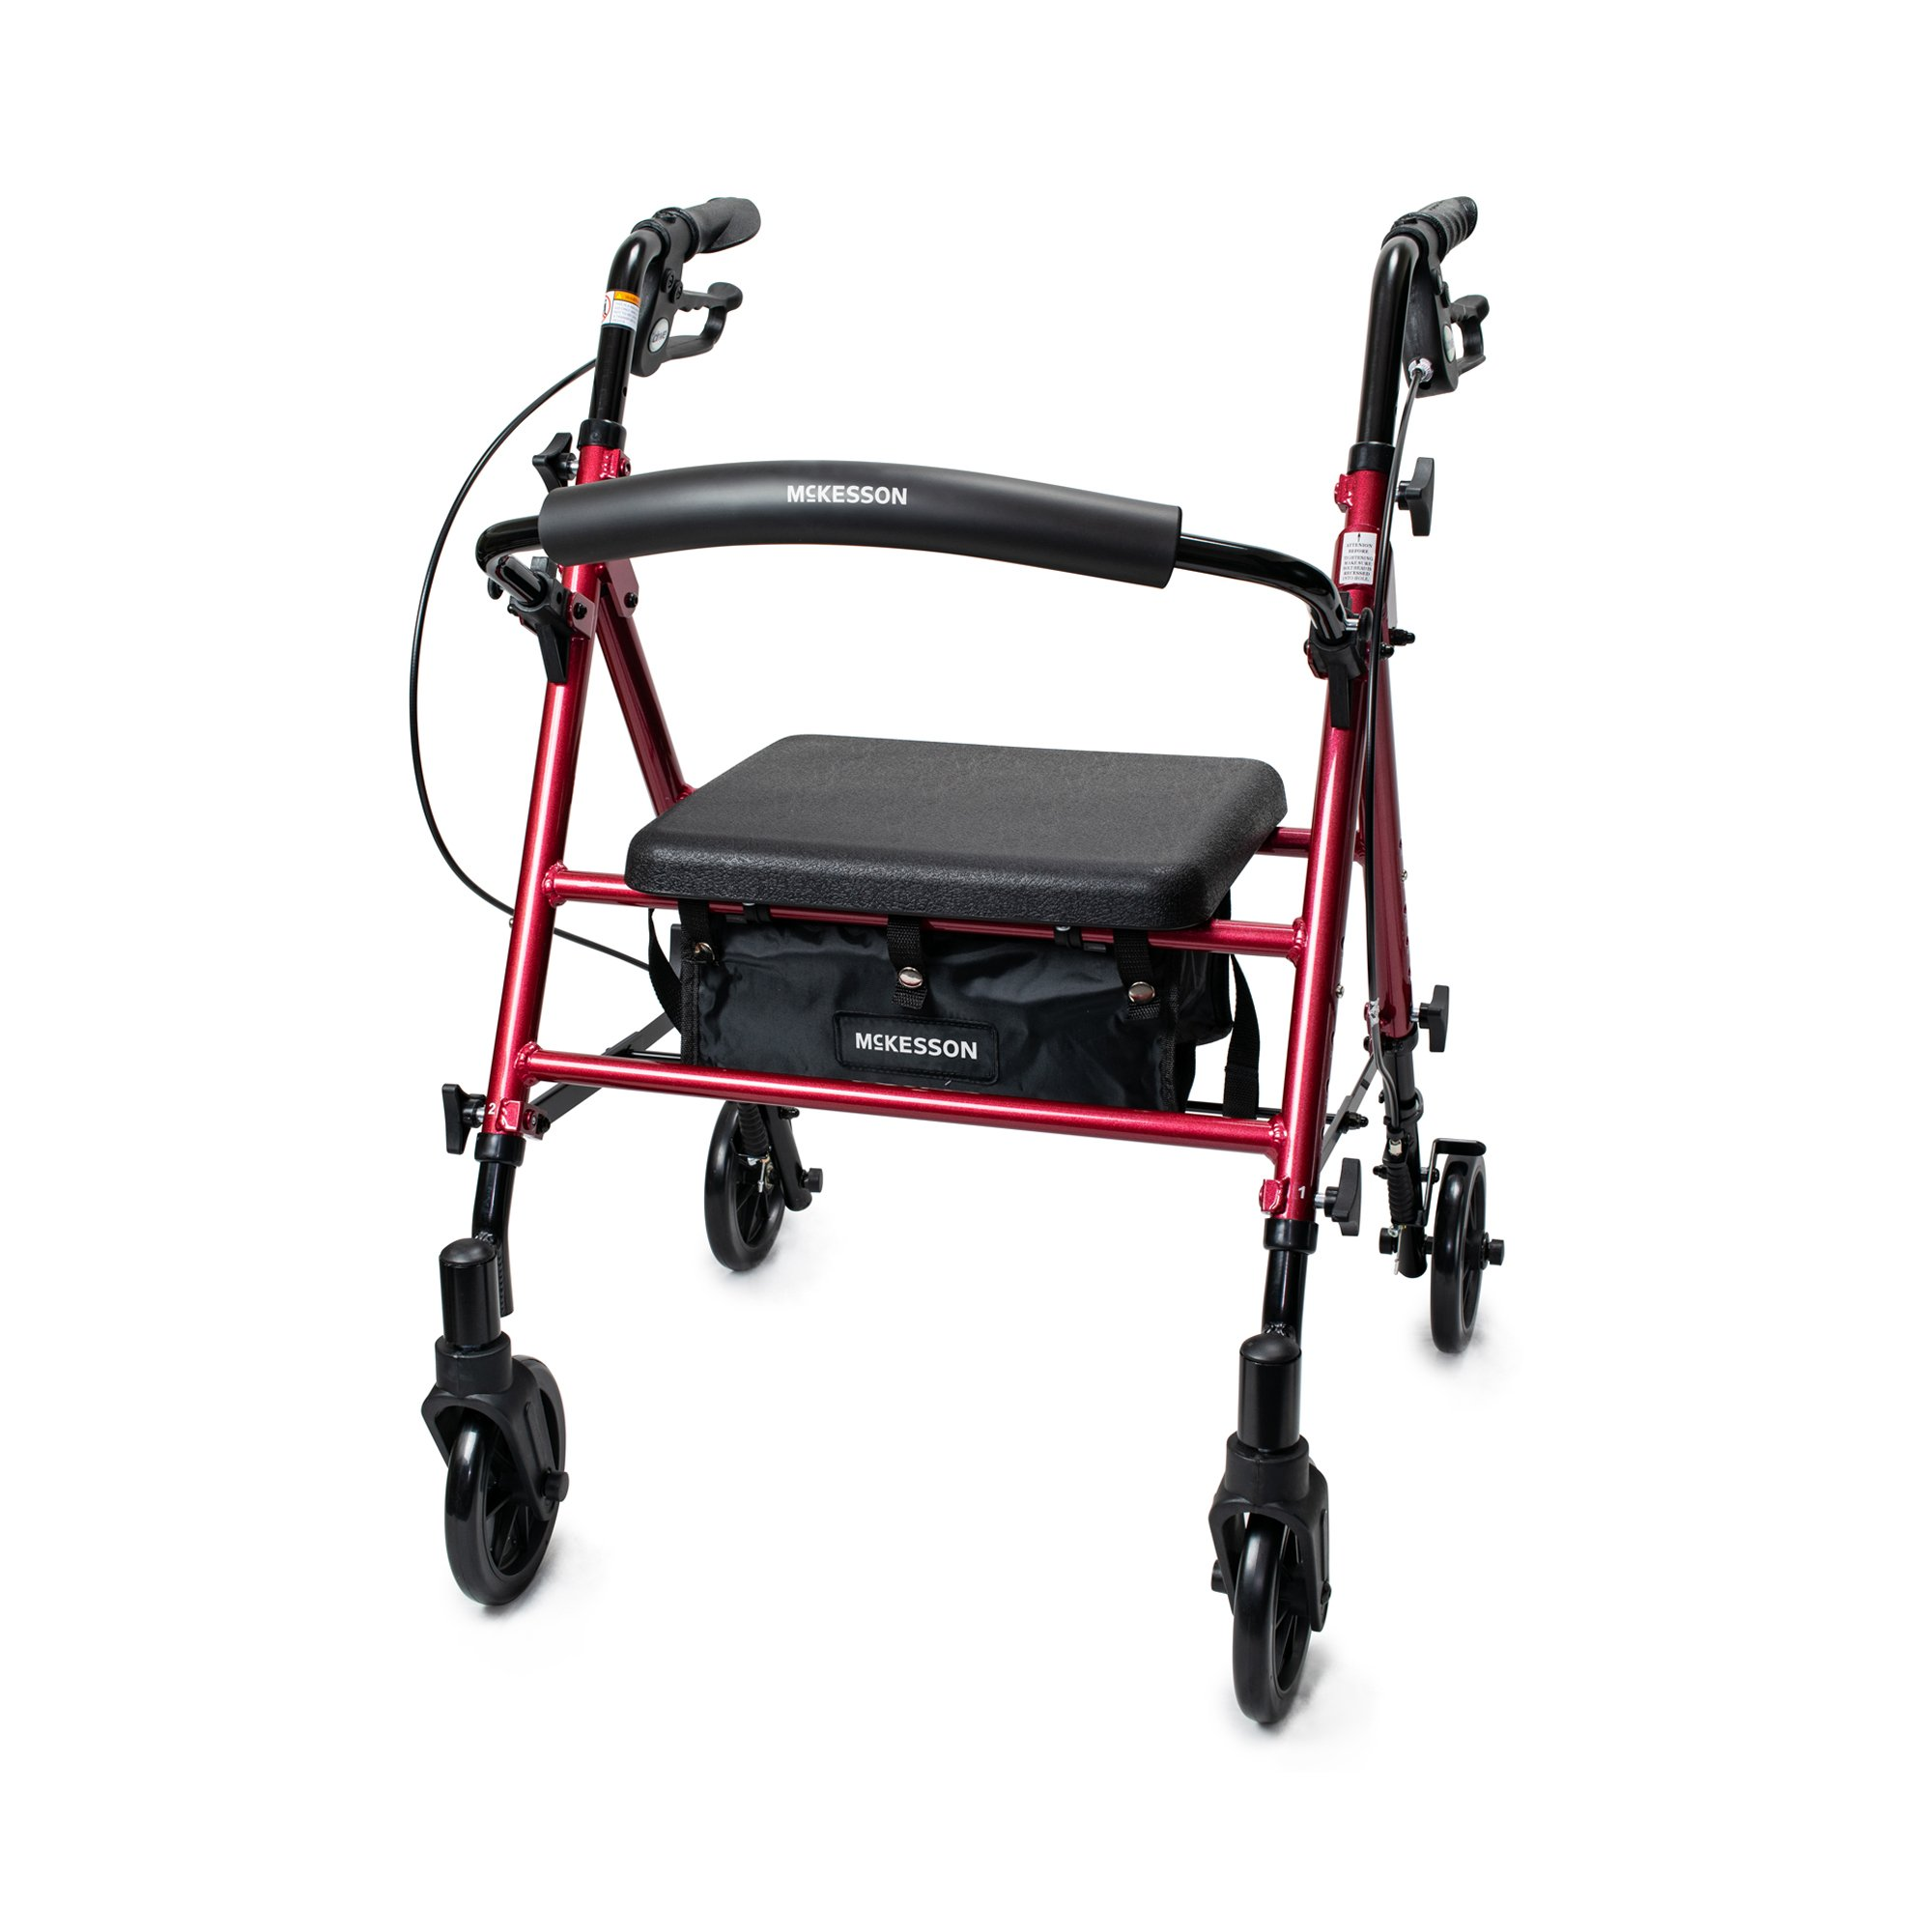 """McKesson Adjustable Height 4 Wheel Rollator, 6"""" Casters, 146-RTL10261RD, Red - 1 Each"""